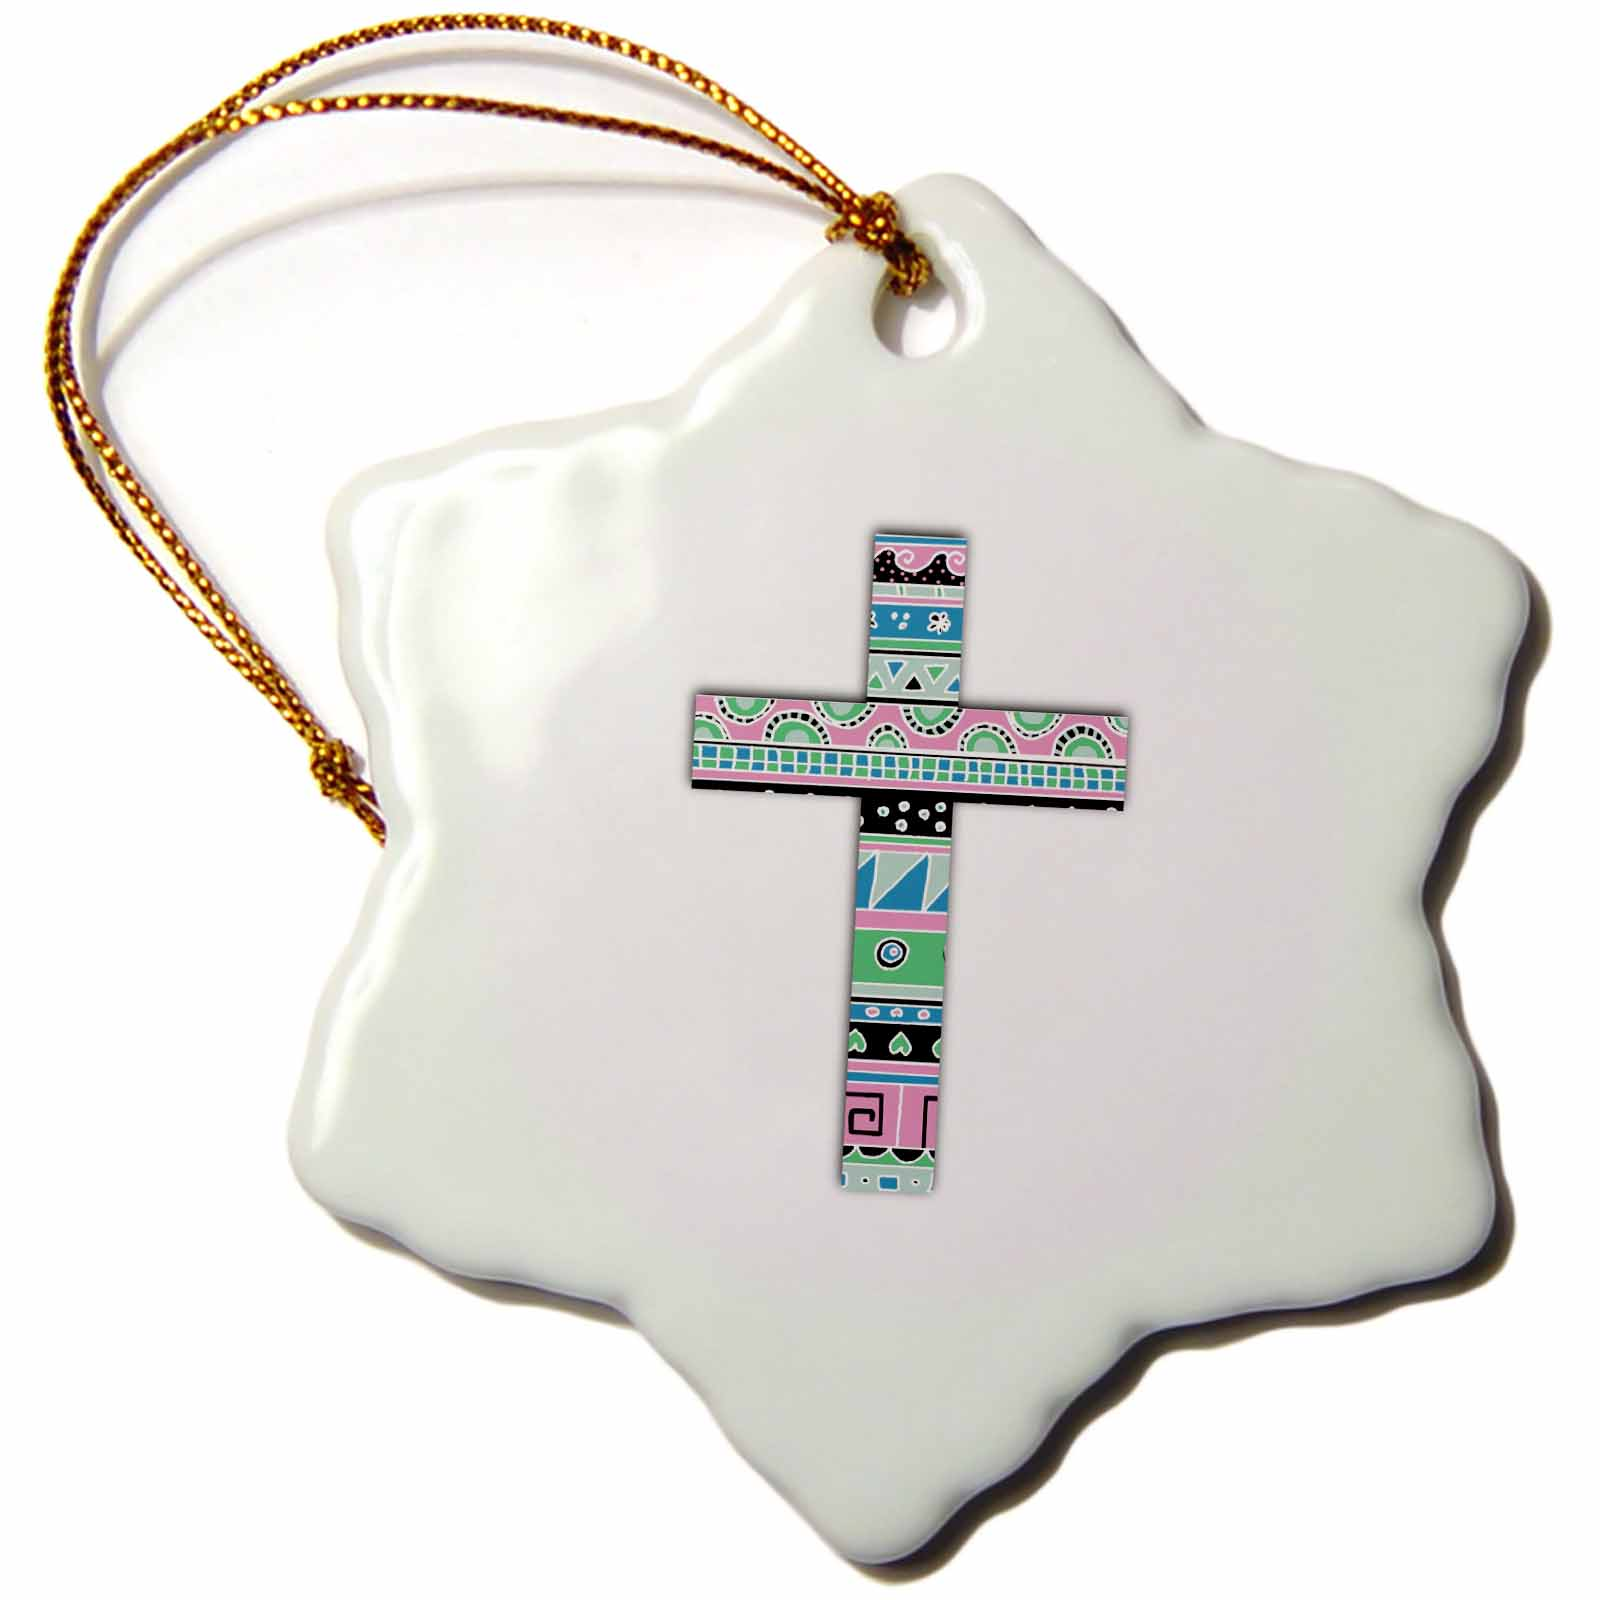 3dRose Turquoise Tribal Christian Cross with pink blue abstract pattern, Snowflake Ornament, Porcelain, 3-inch